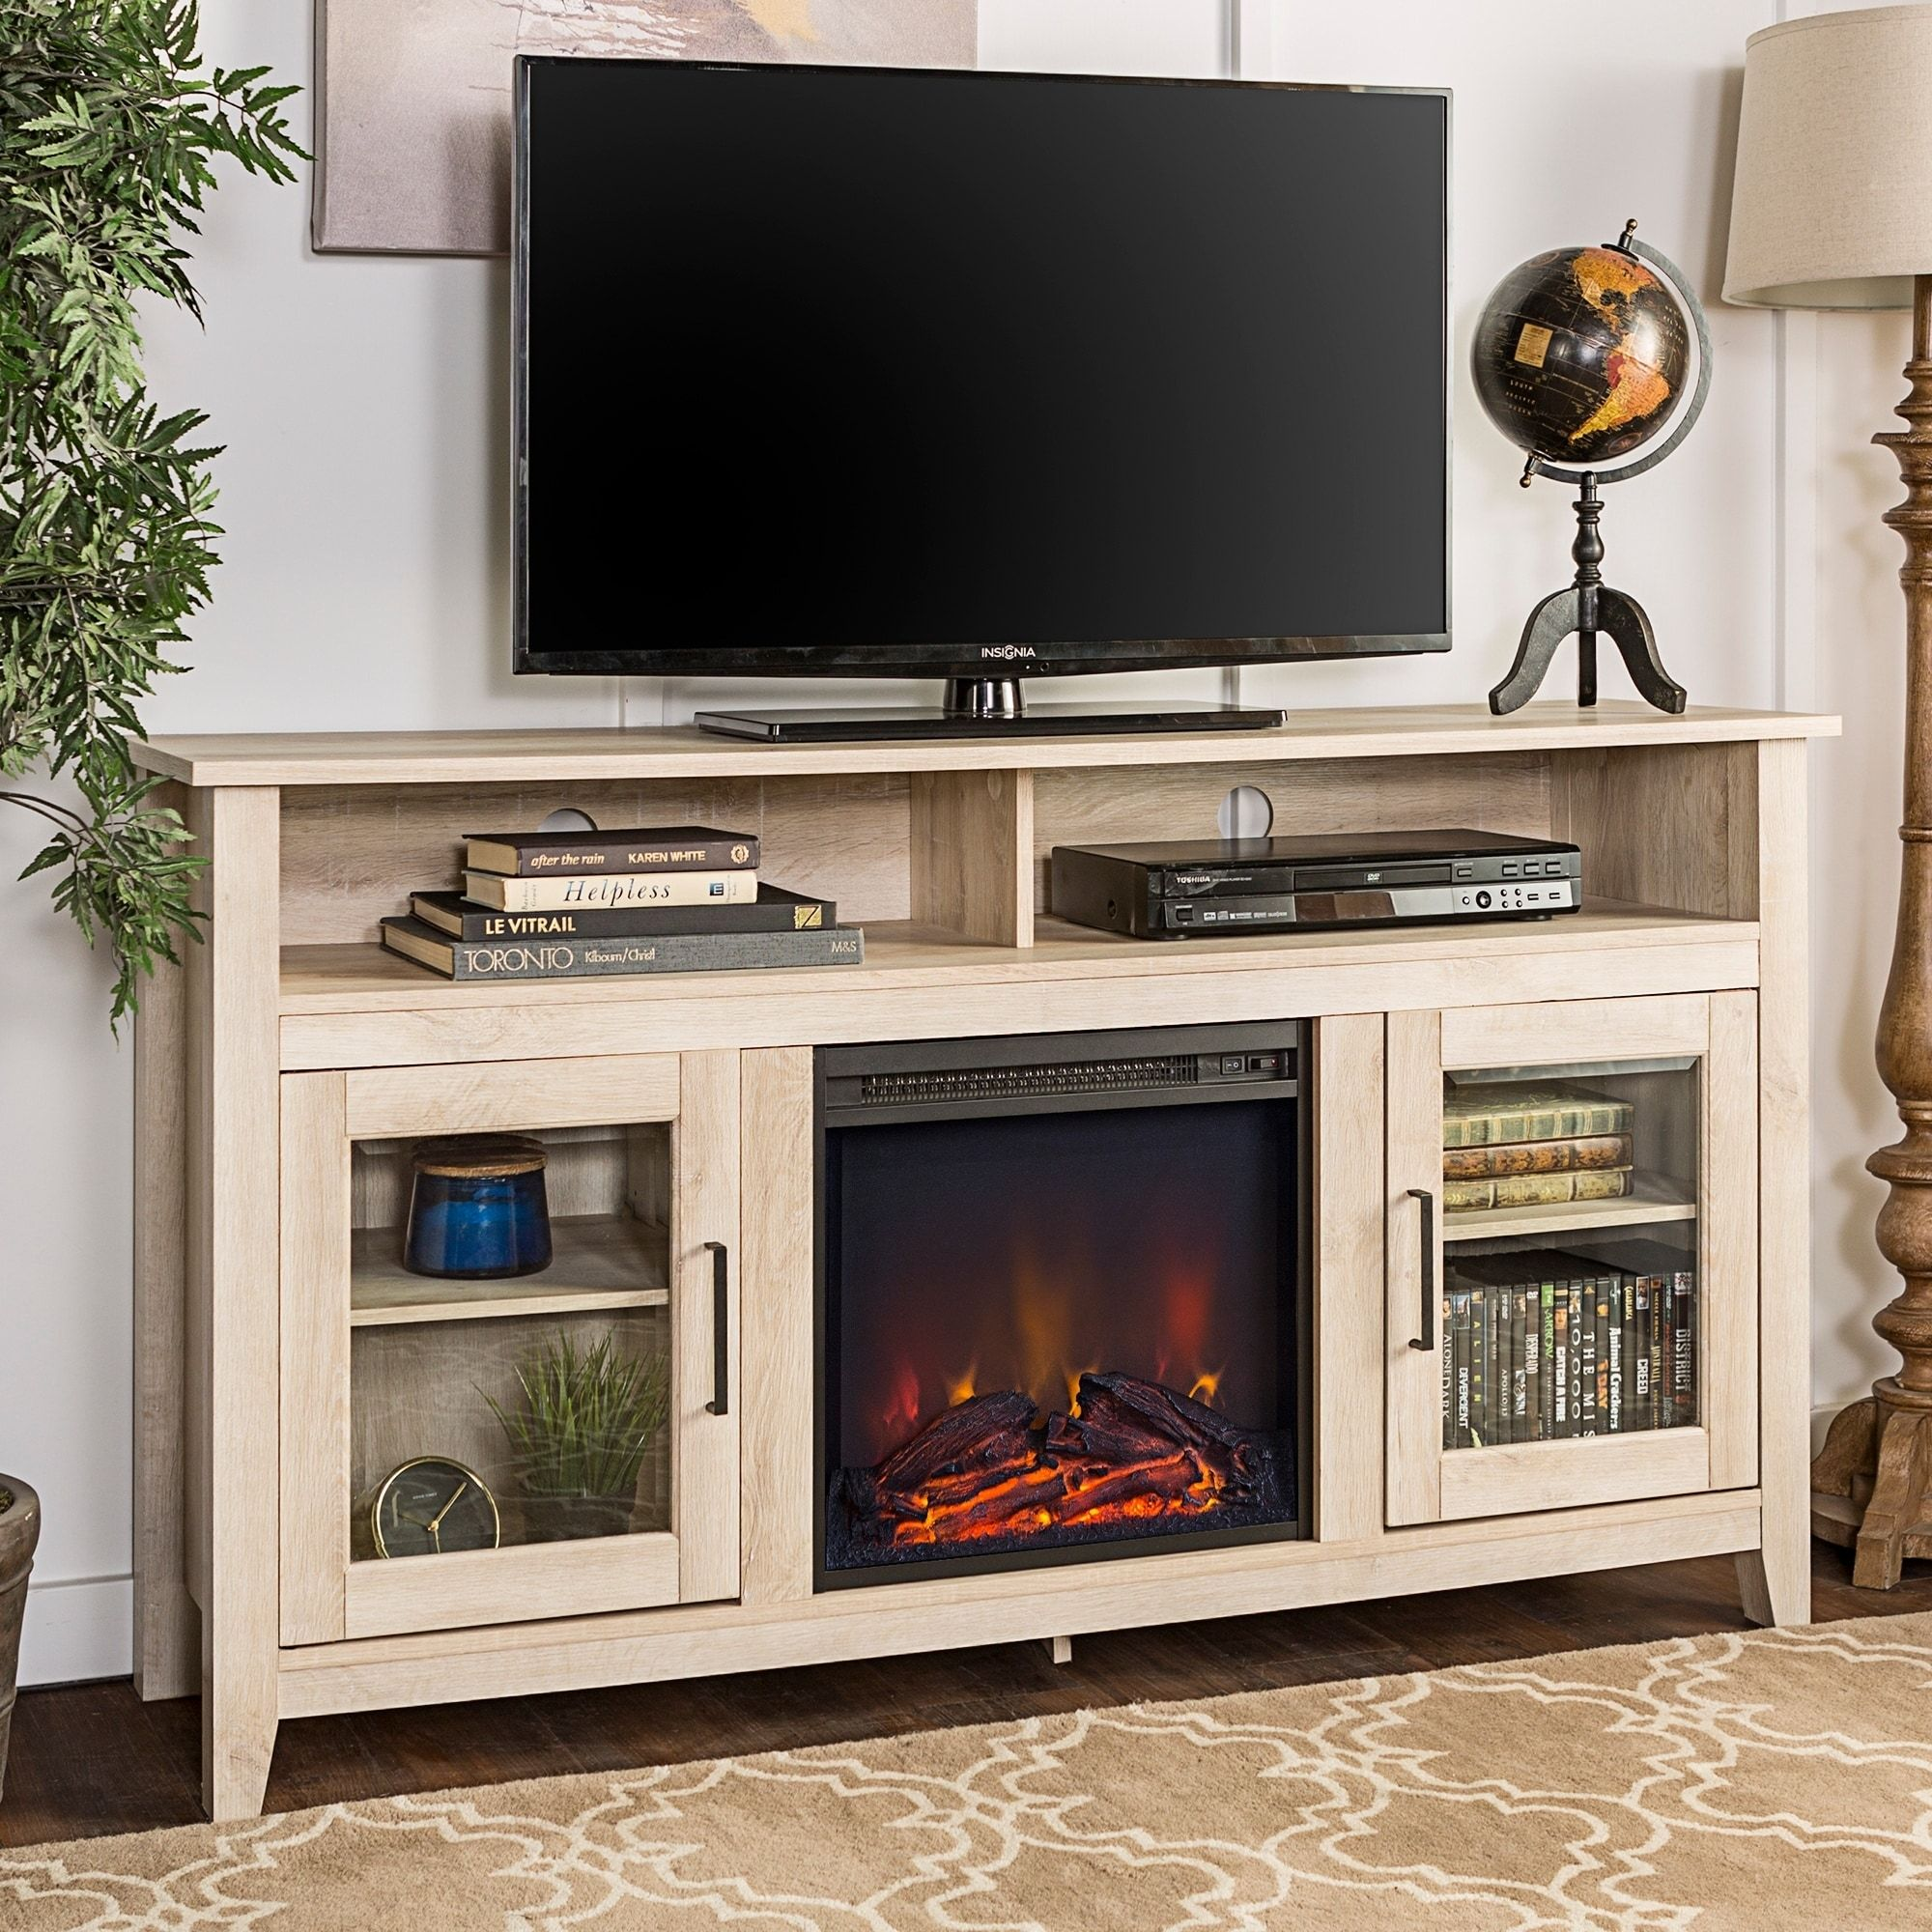 58 Inch Highboy 2 Door Fireplace Tv Stand Console Electric Fireplace Tv Stand Fireplace Tv Stand Highboy Tv Stand